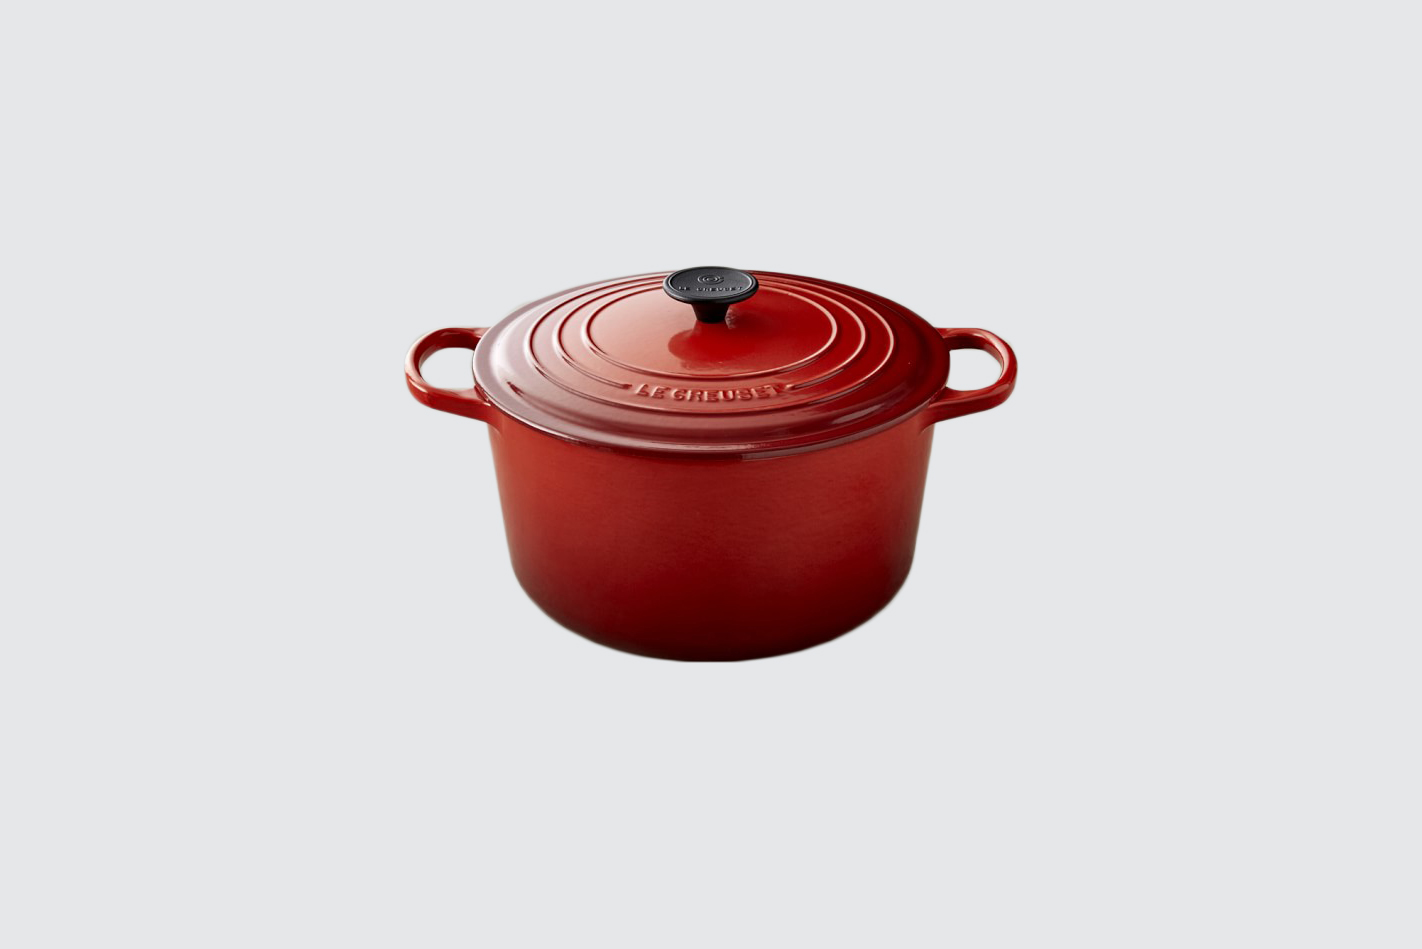 Le Creuset Signature Cast-Iron Deep Oven